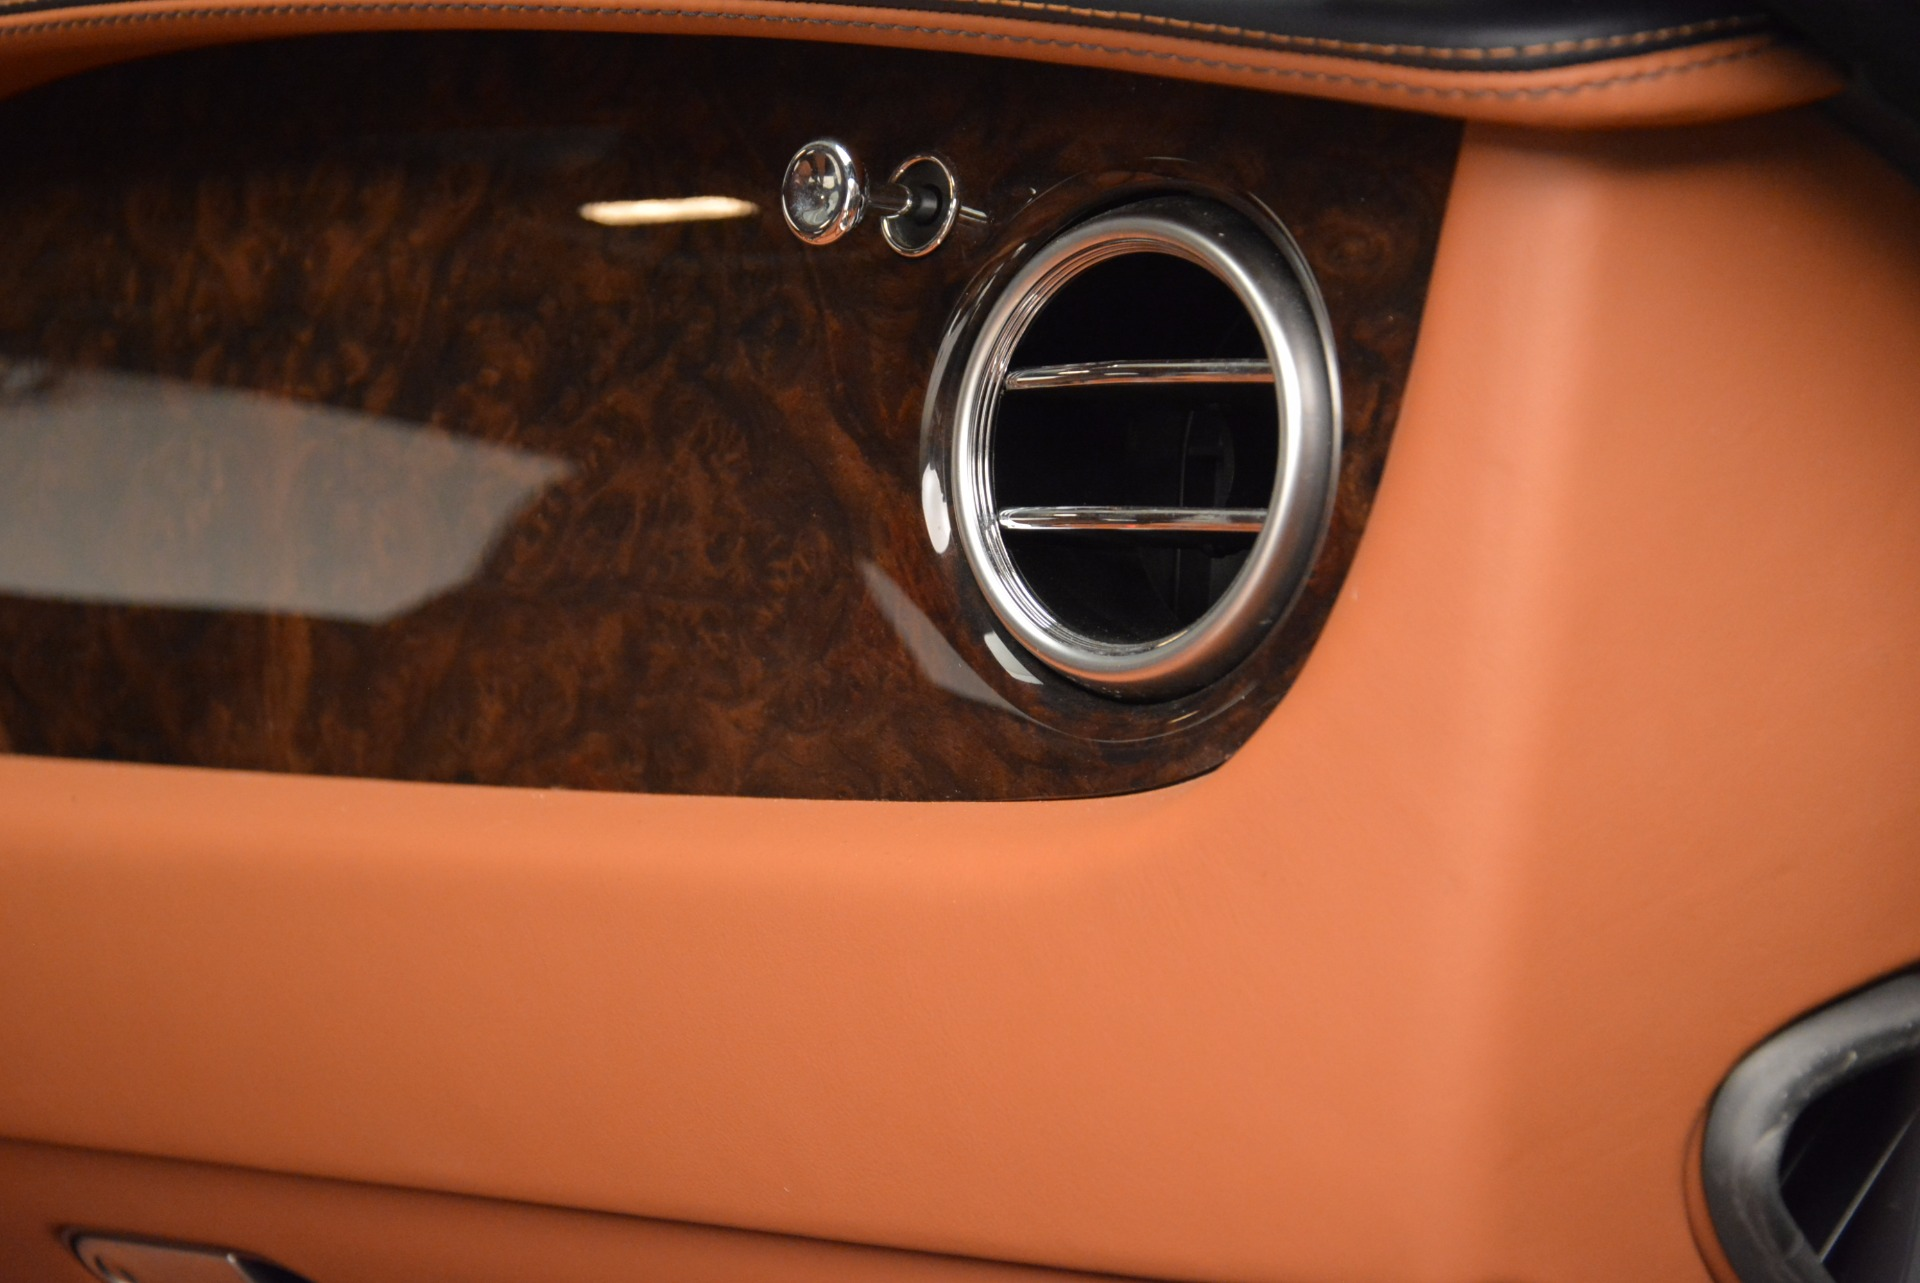 Used 2014 Bentley Continental GT W12 For Sale In Westport, CT 1845_p35